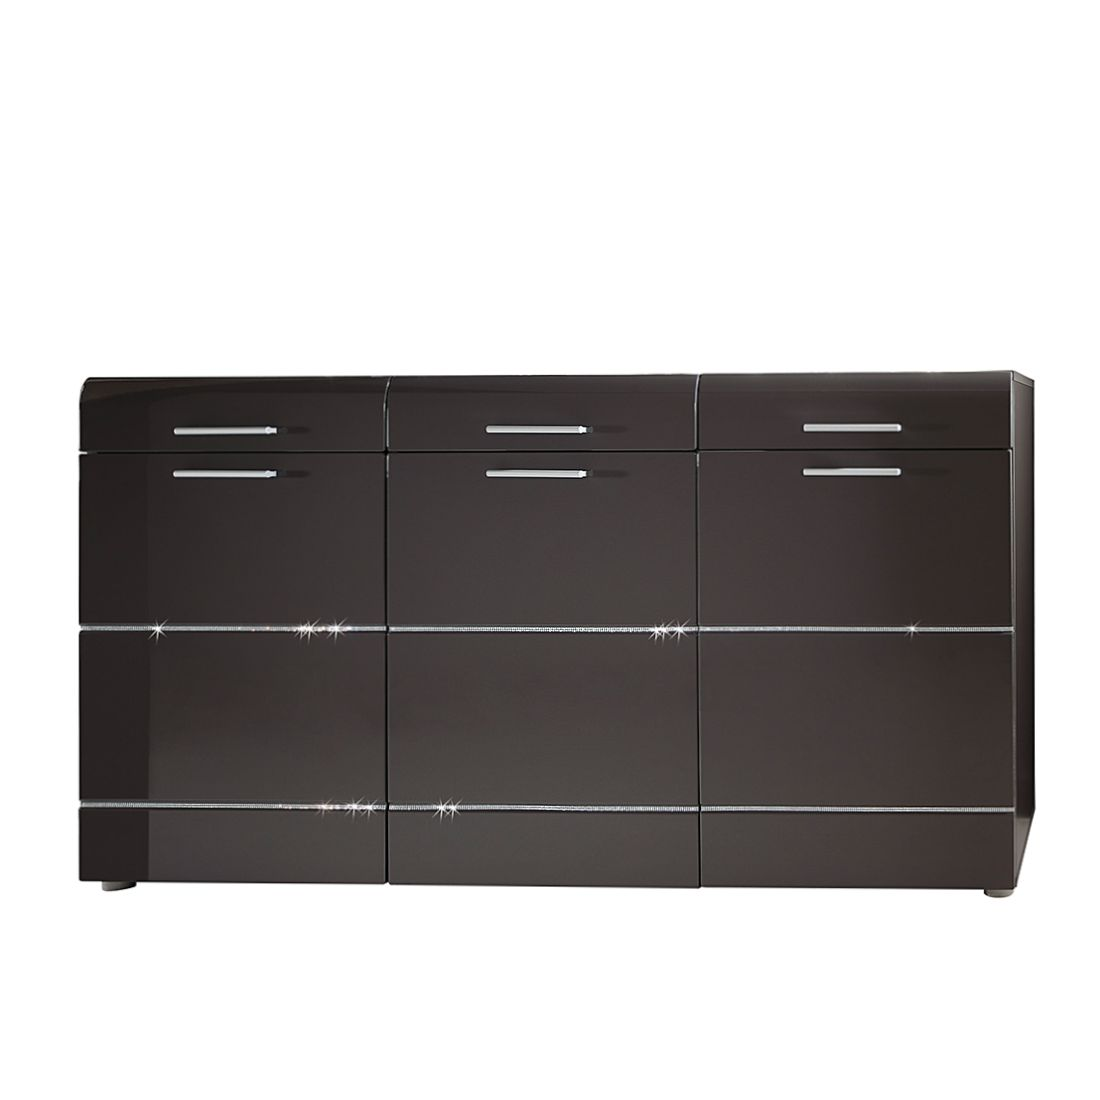 sideboard star anthrazit hochglanz sideboard jolly anthrazit hochglanz ausgefallene. Black Bedroom Furniture Sets. Home Design Ideas